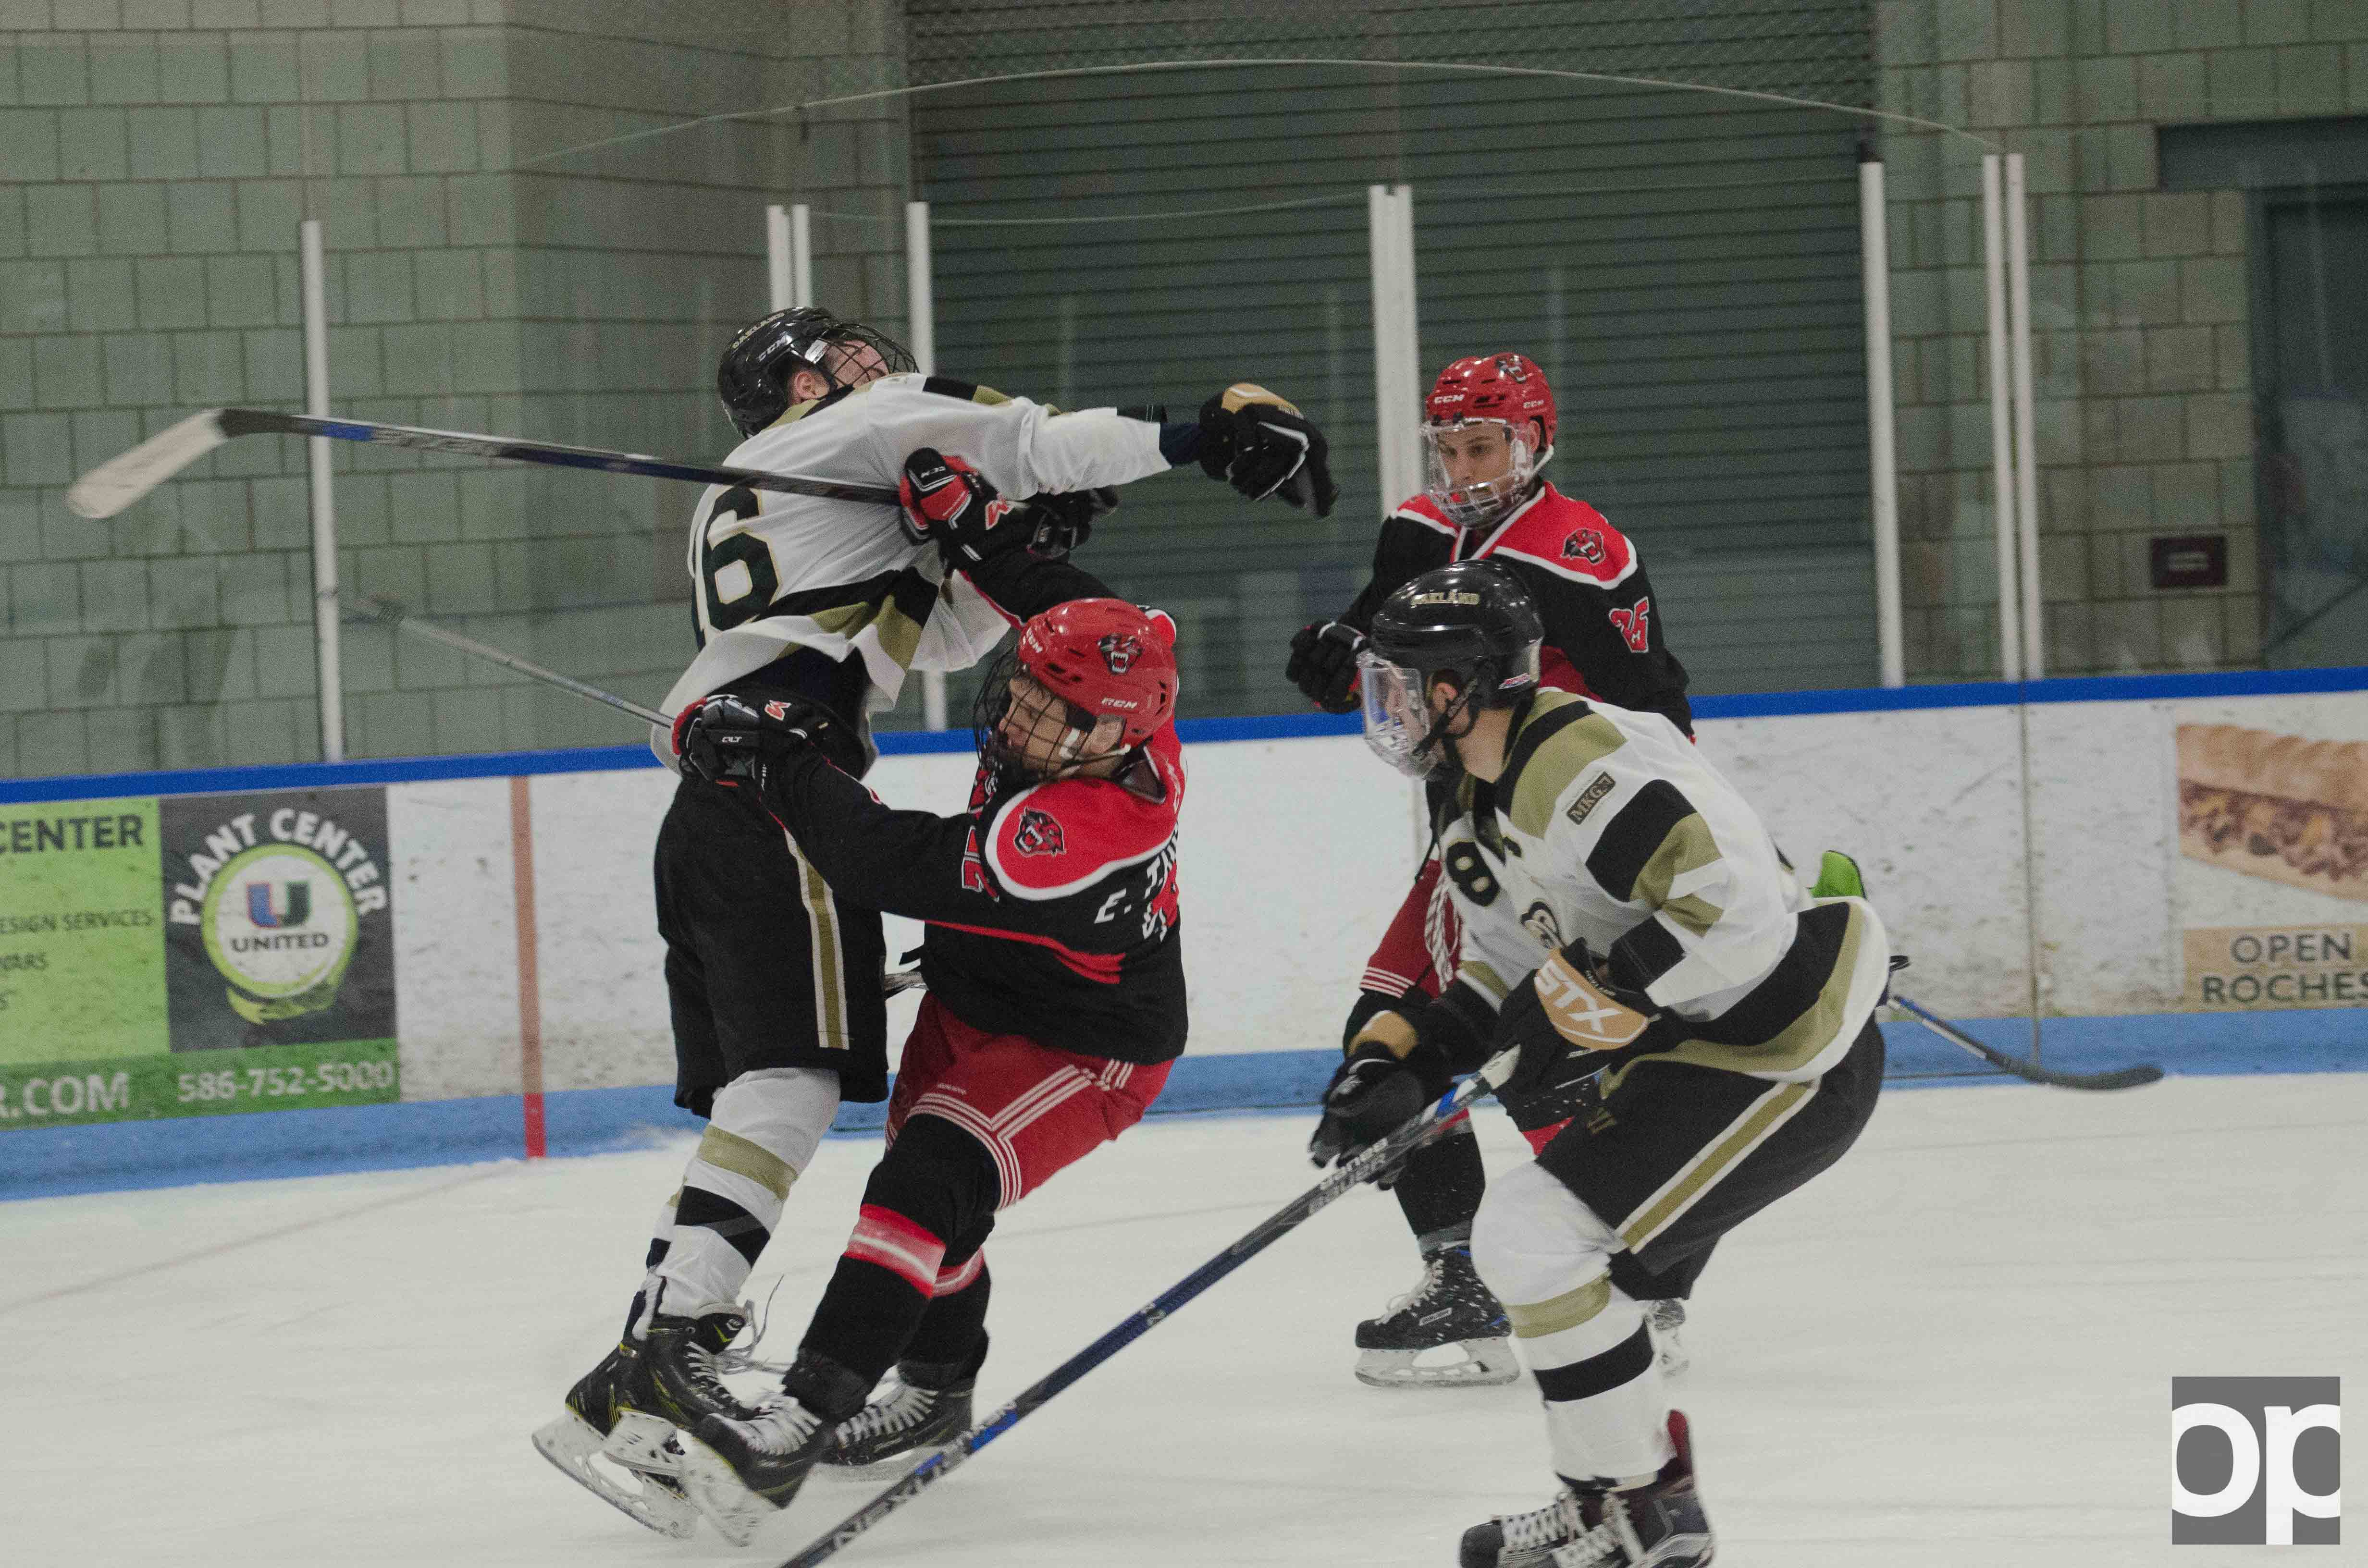 Oakland's Division I hockey team played against Davenport on Saturday, Jan. 28 at the Onyx Rochester Ice Arena.